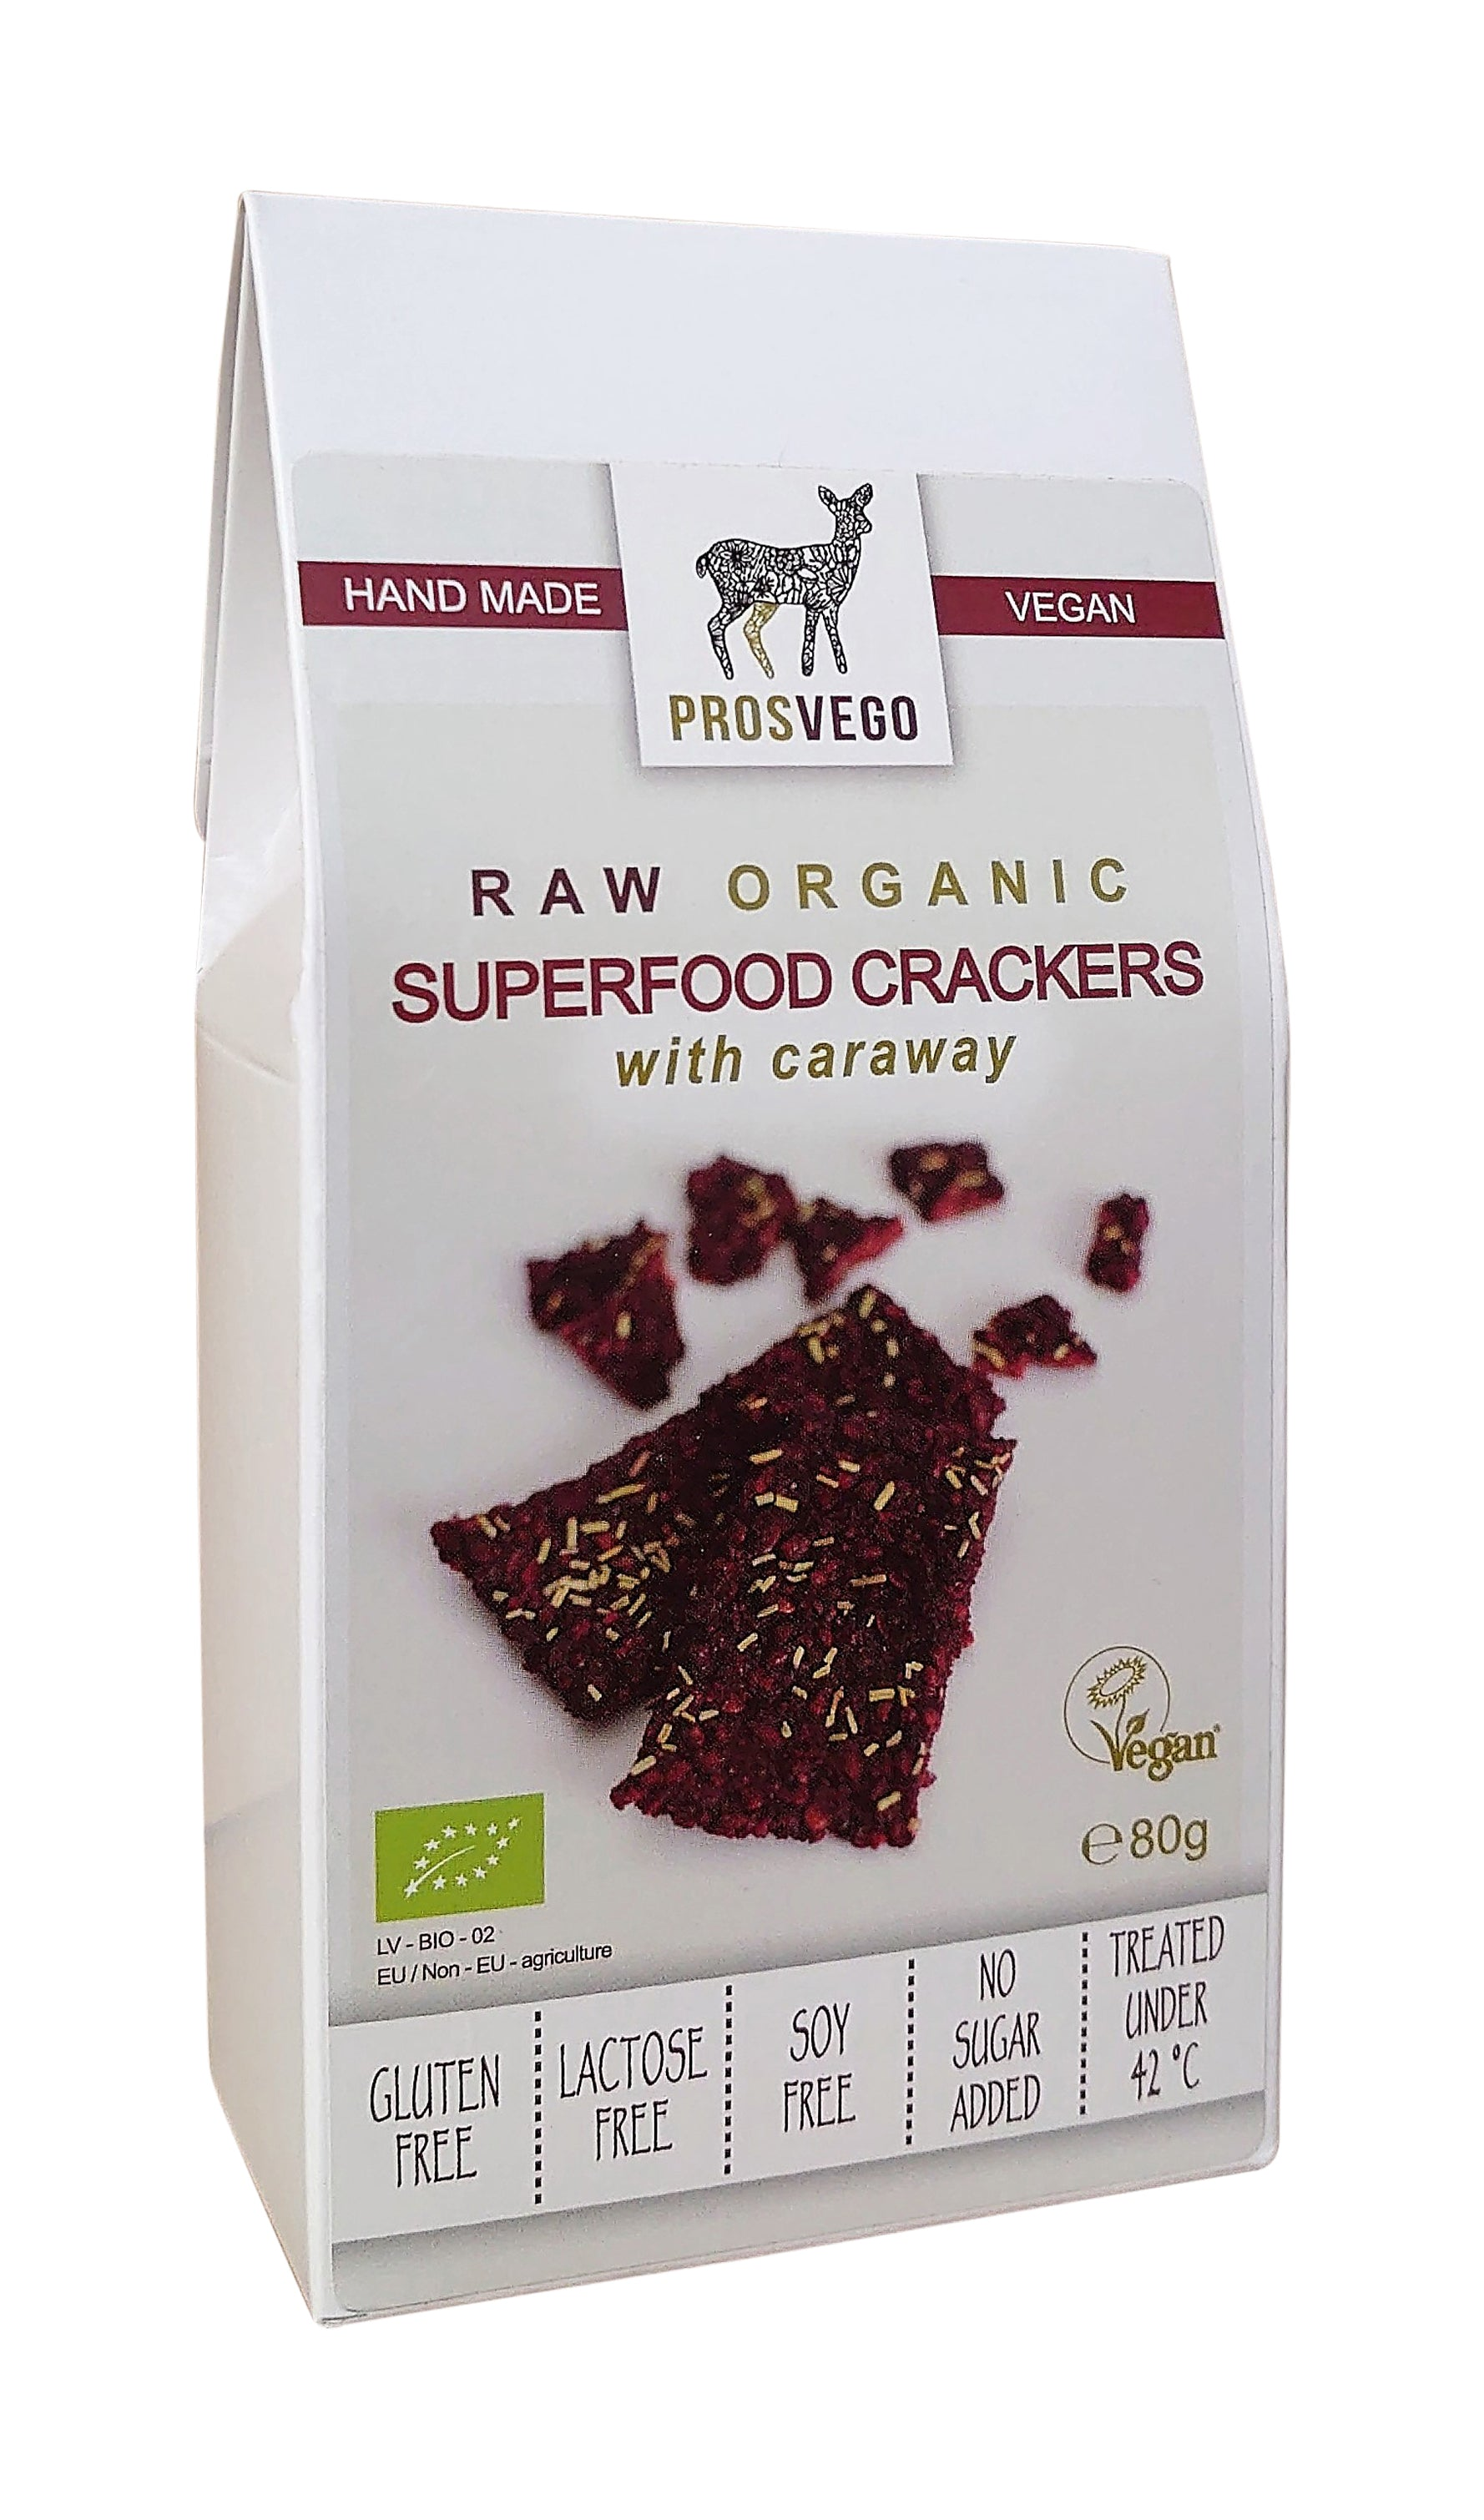 Raw Organic Superfood Crackers with Caraway